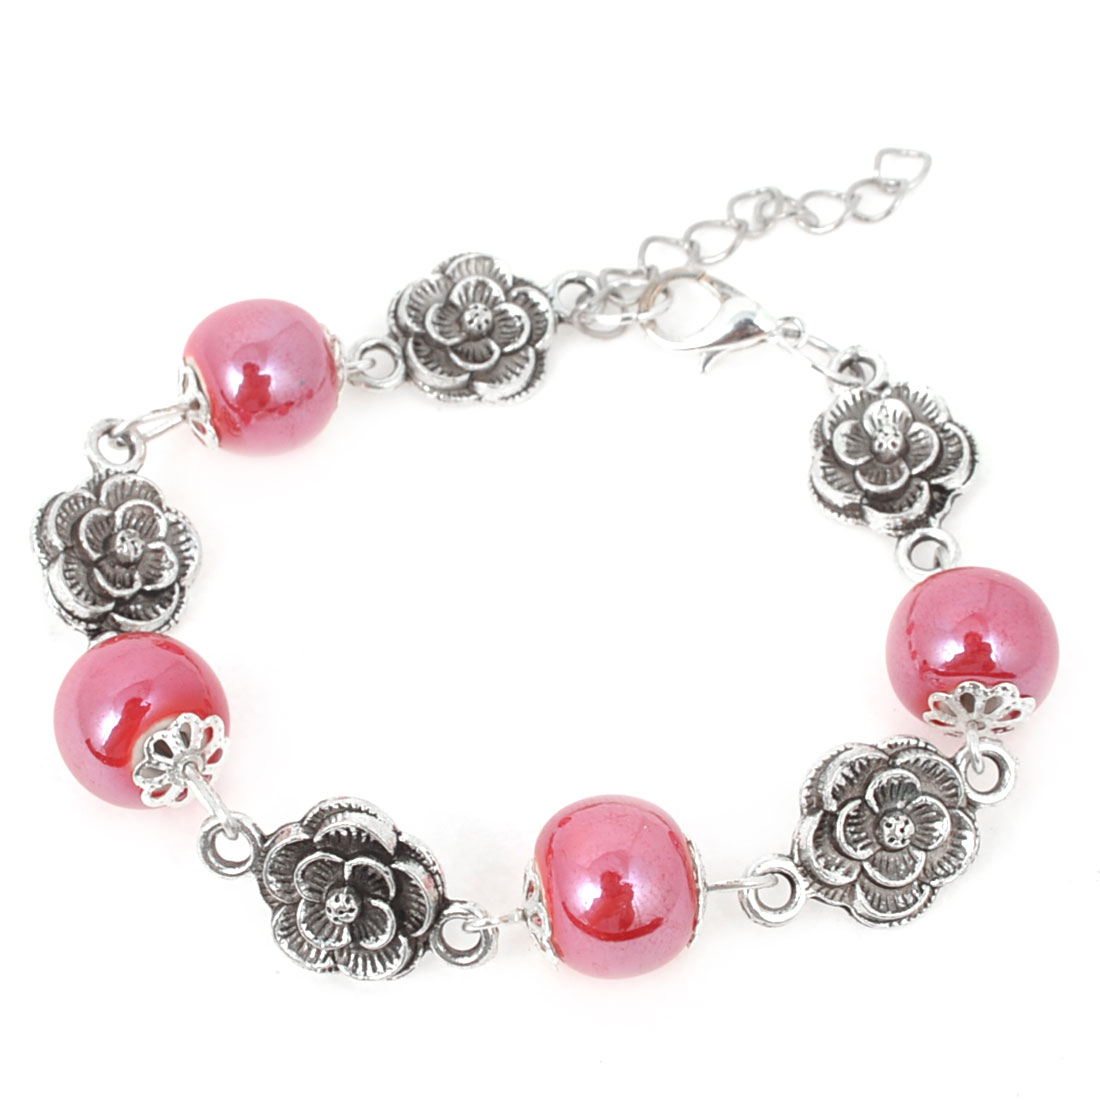 Lady Miao Silver Ornament Folk Style Flower Print Charm Jewelry Ceramic Bracelet